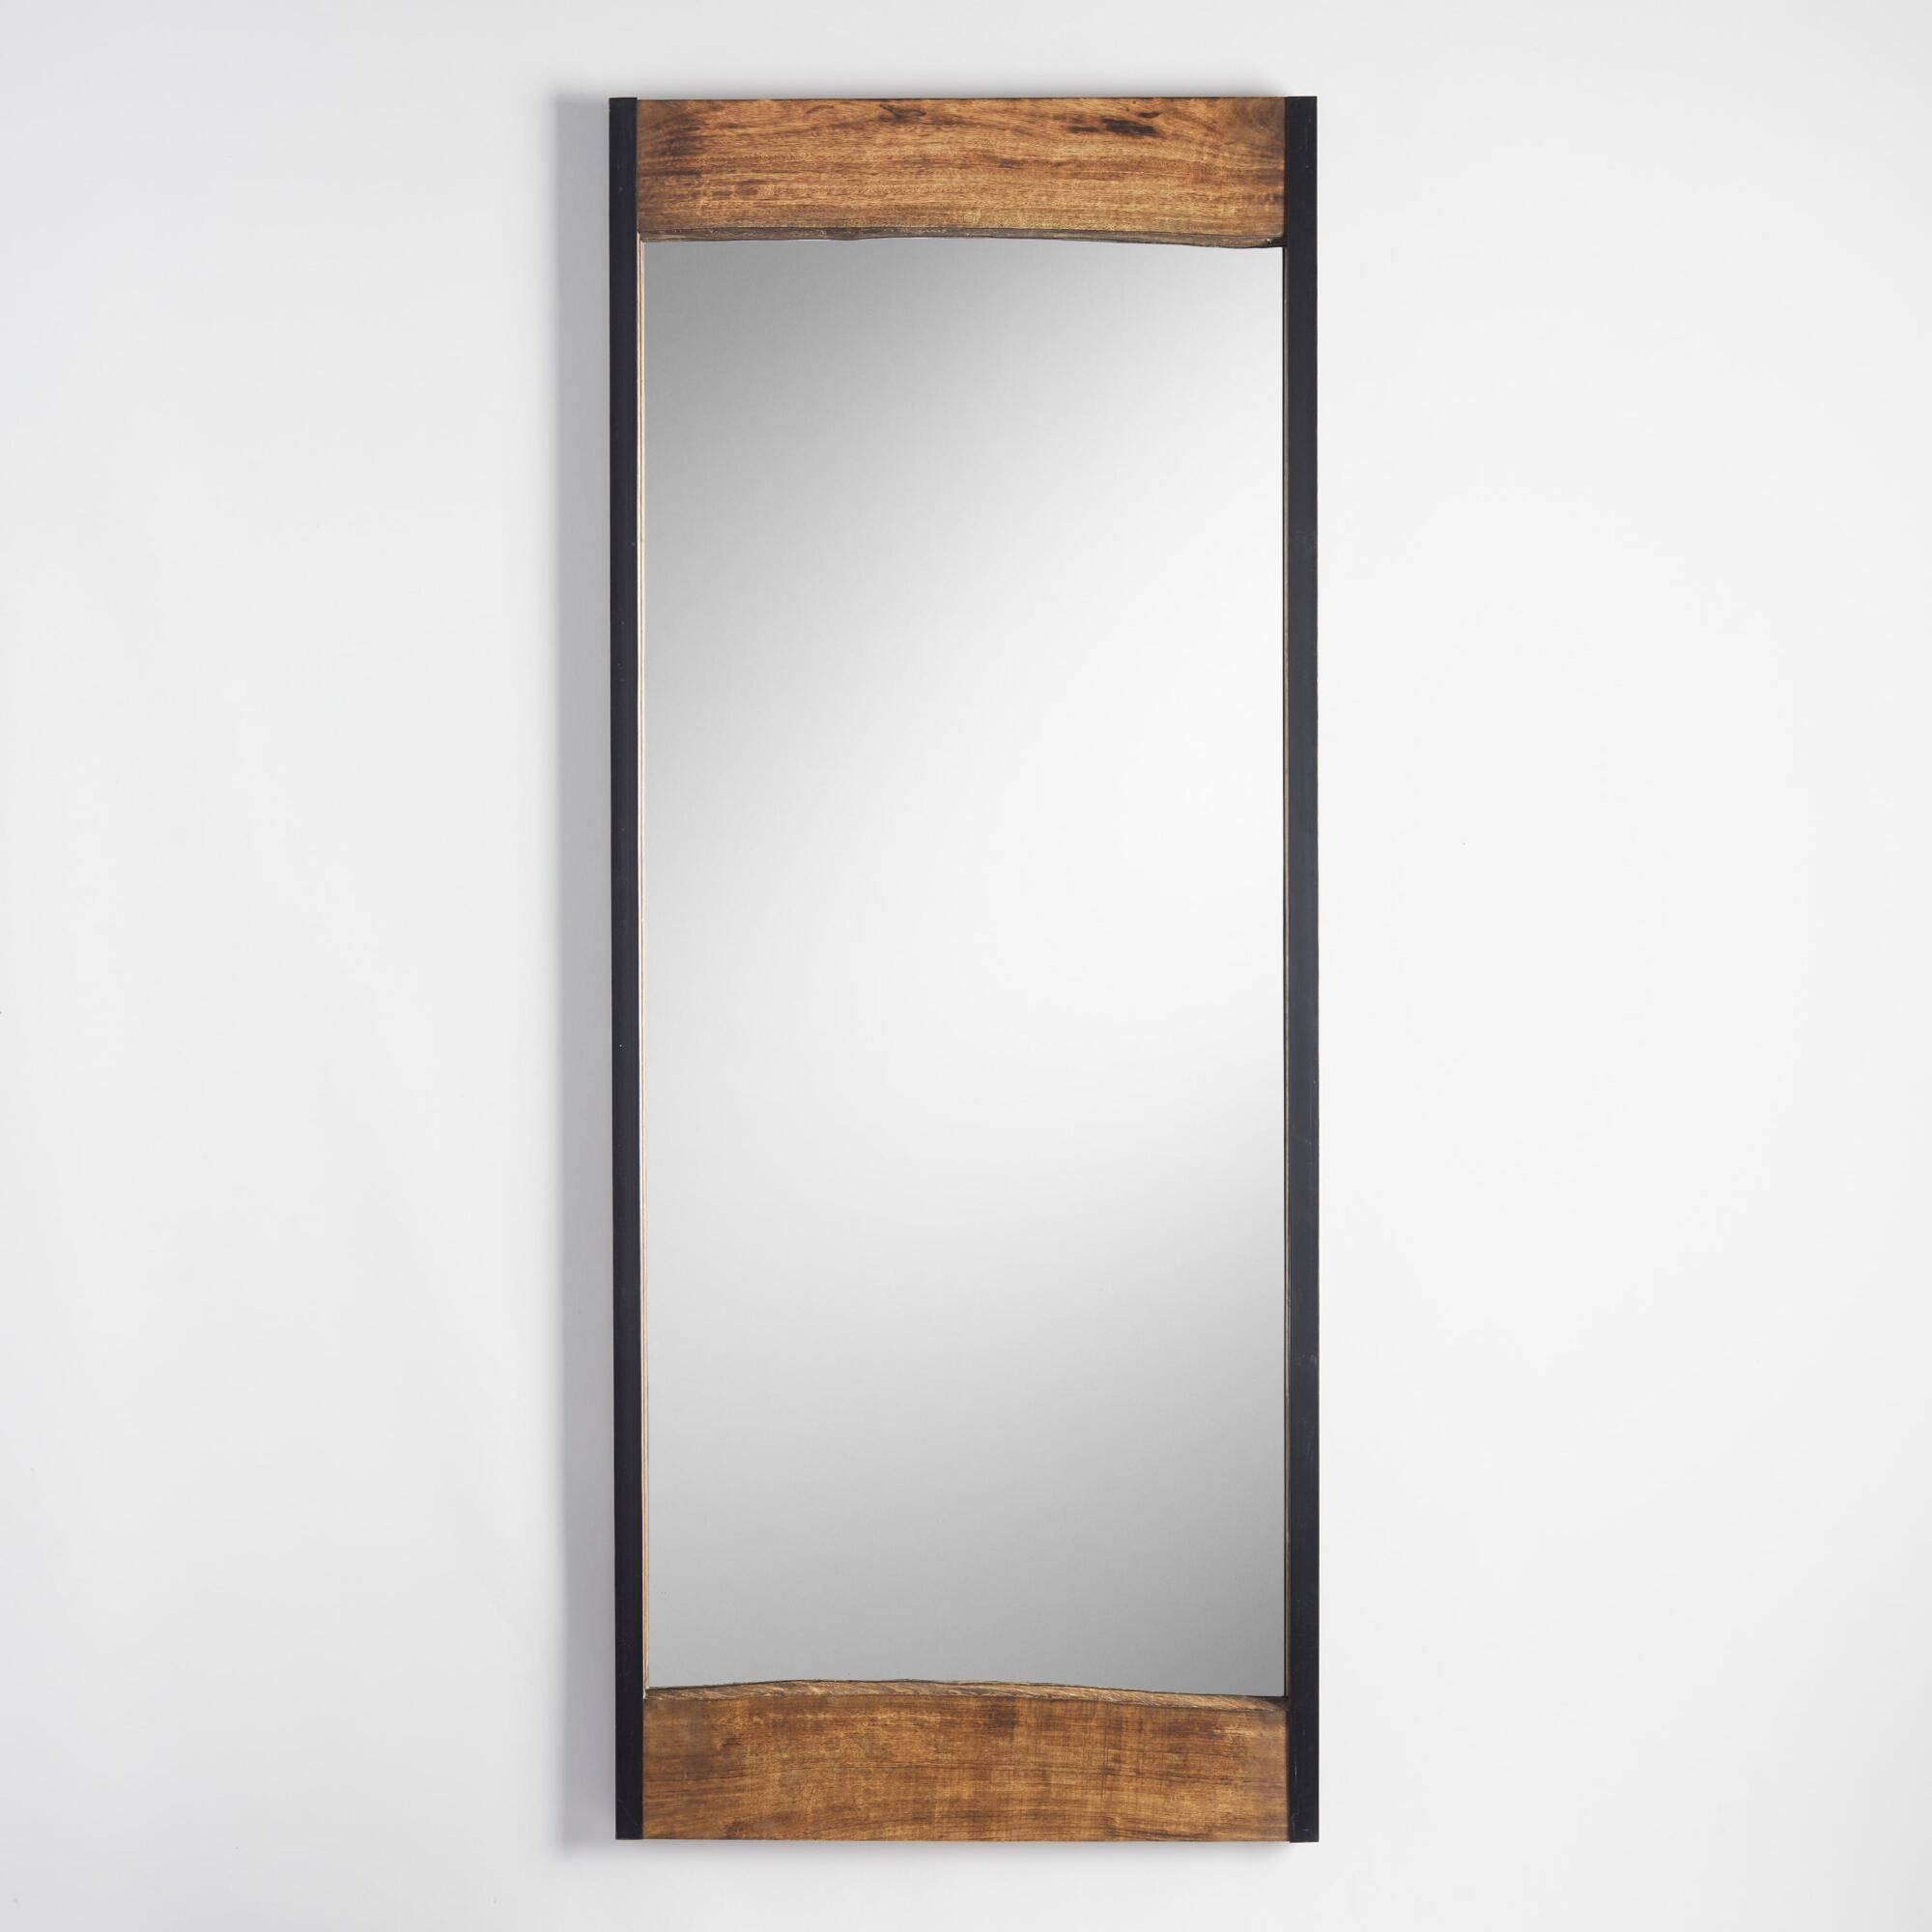 Make a rustic statement with our leaning floor mirror, handcrafted ...